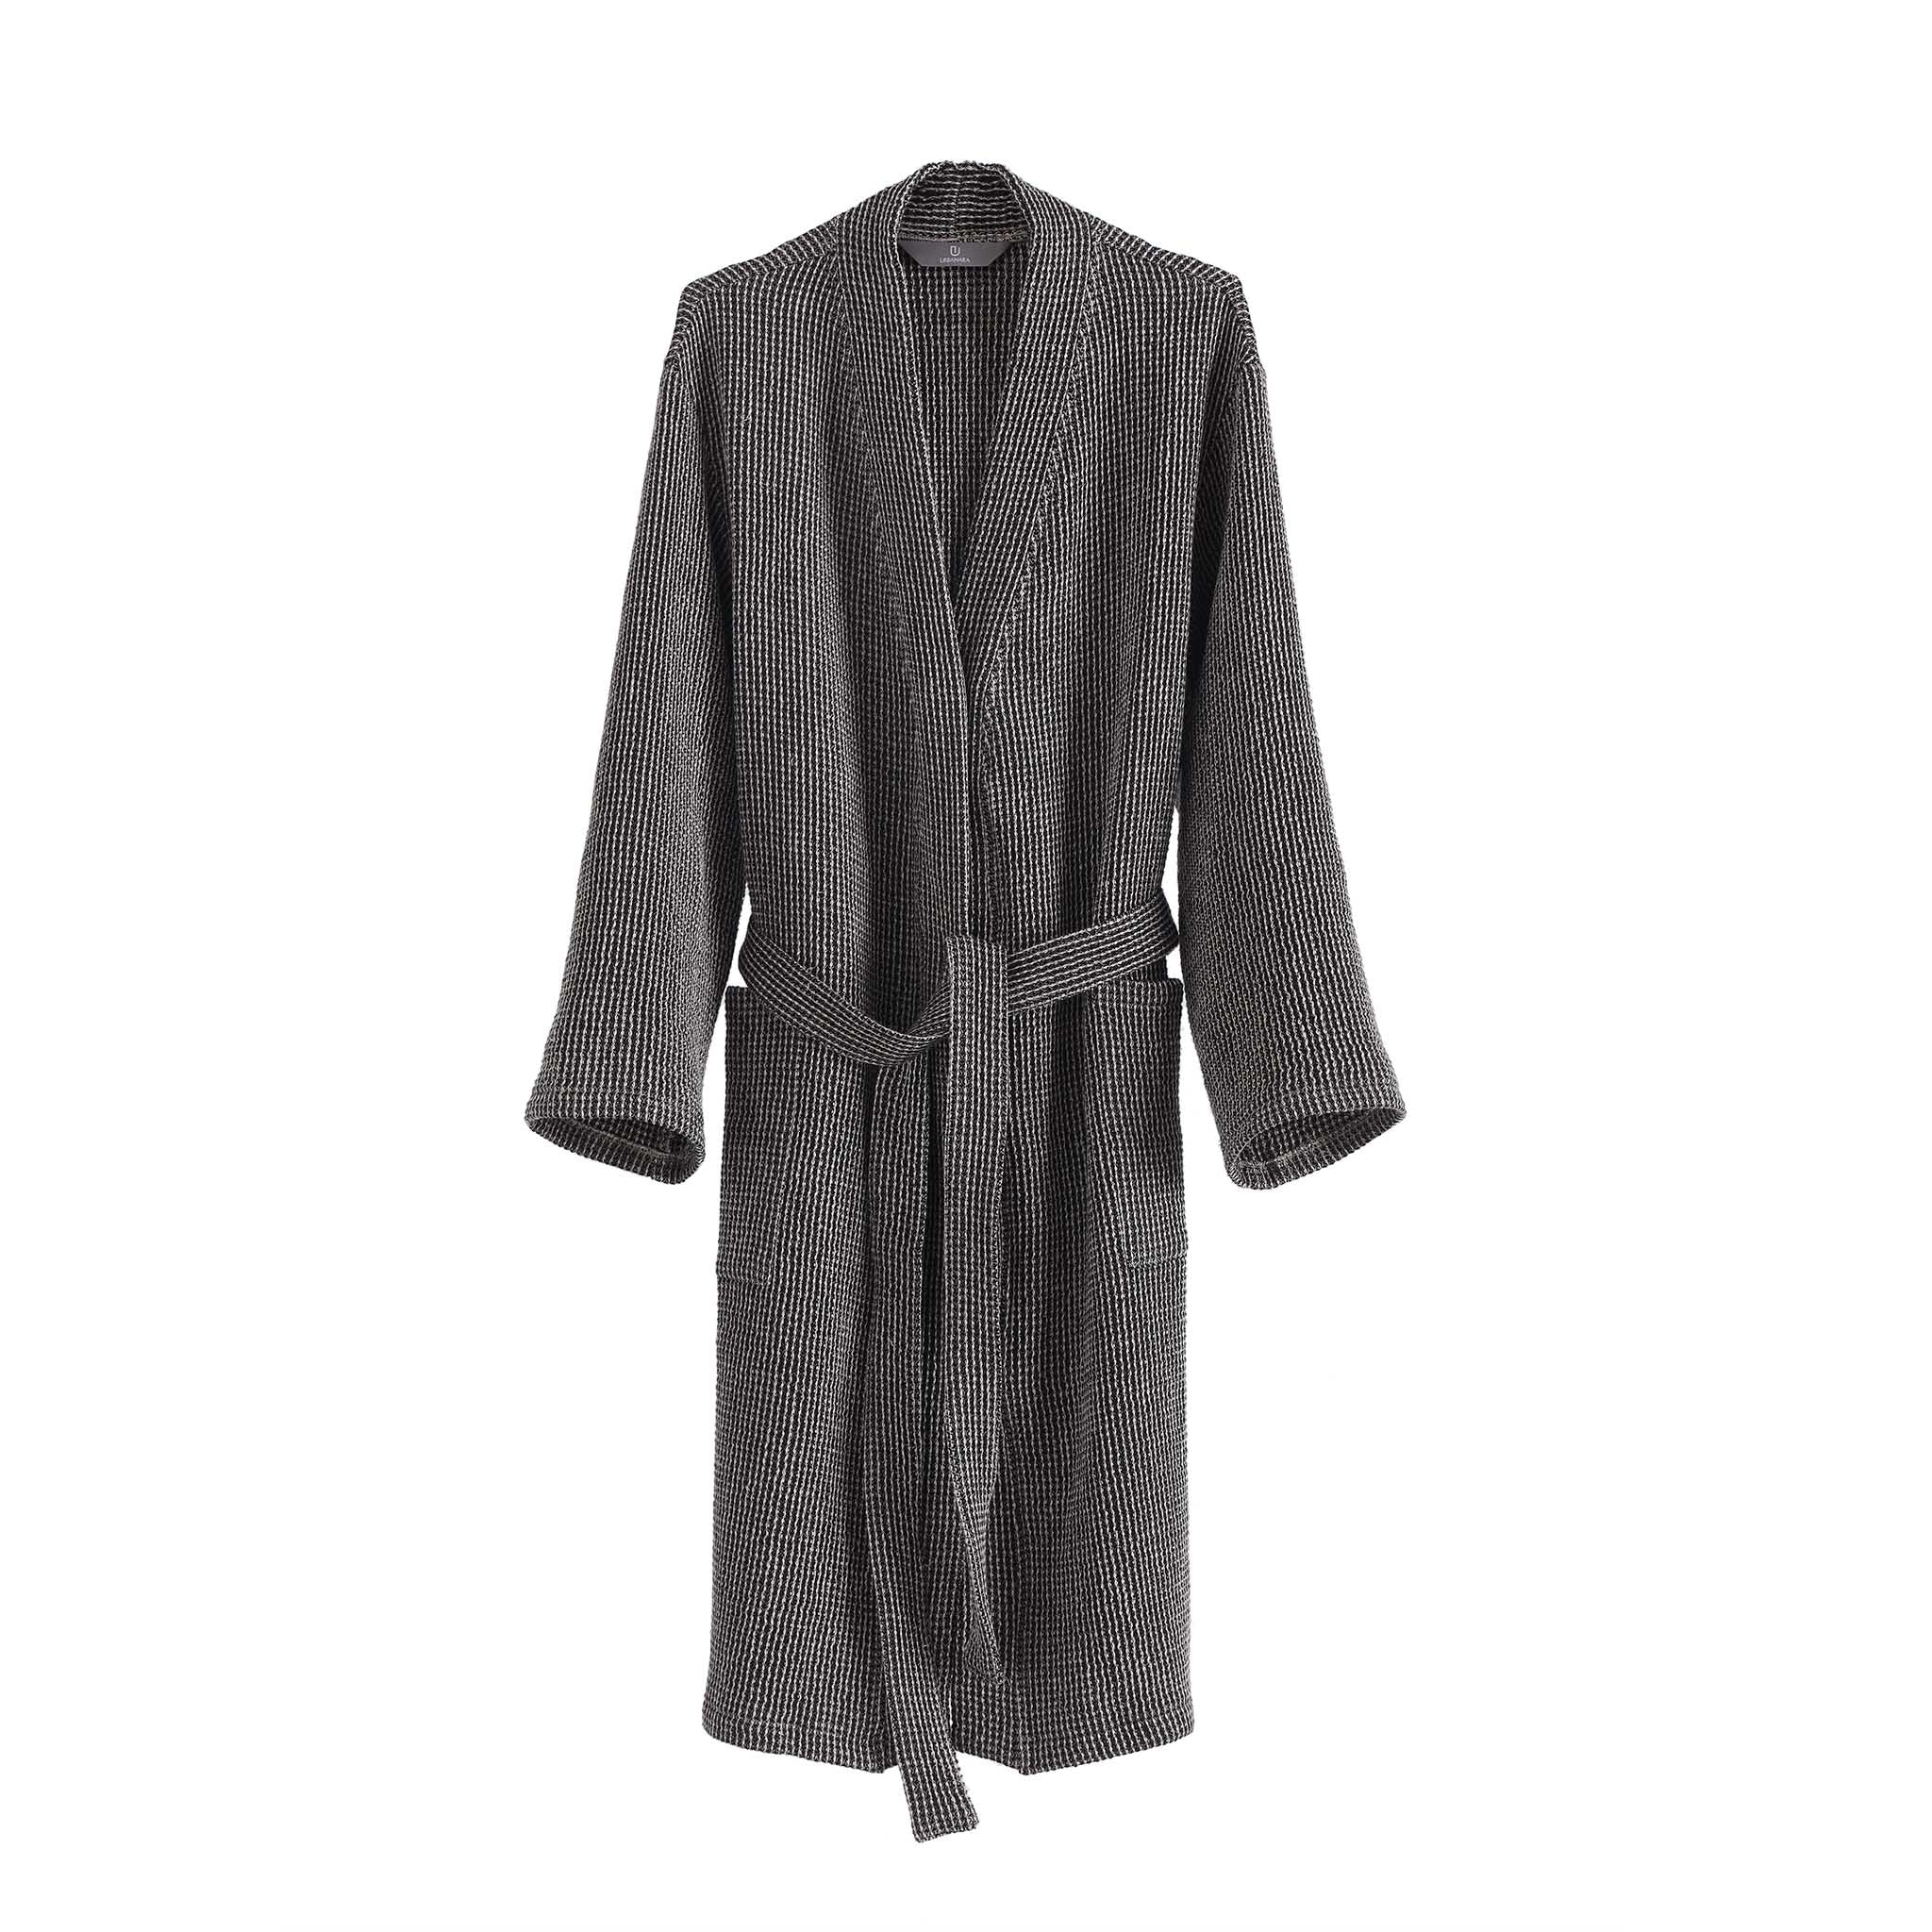 Kotra Bathrobe black & beige, 50% linen & 50% cotton